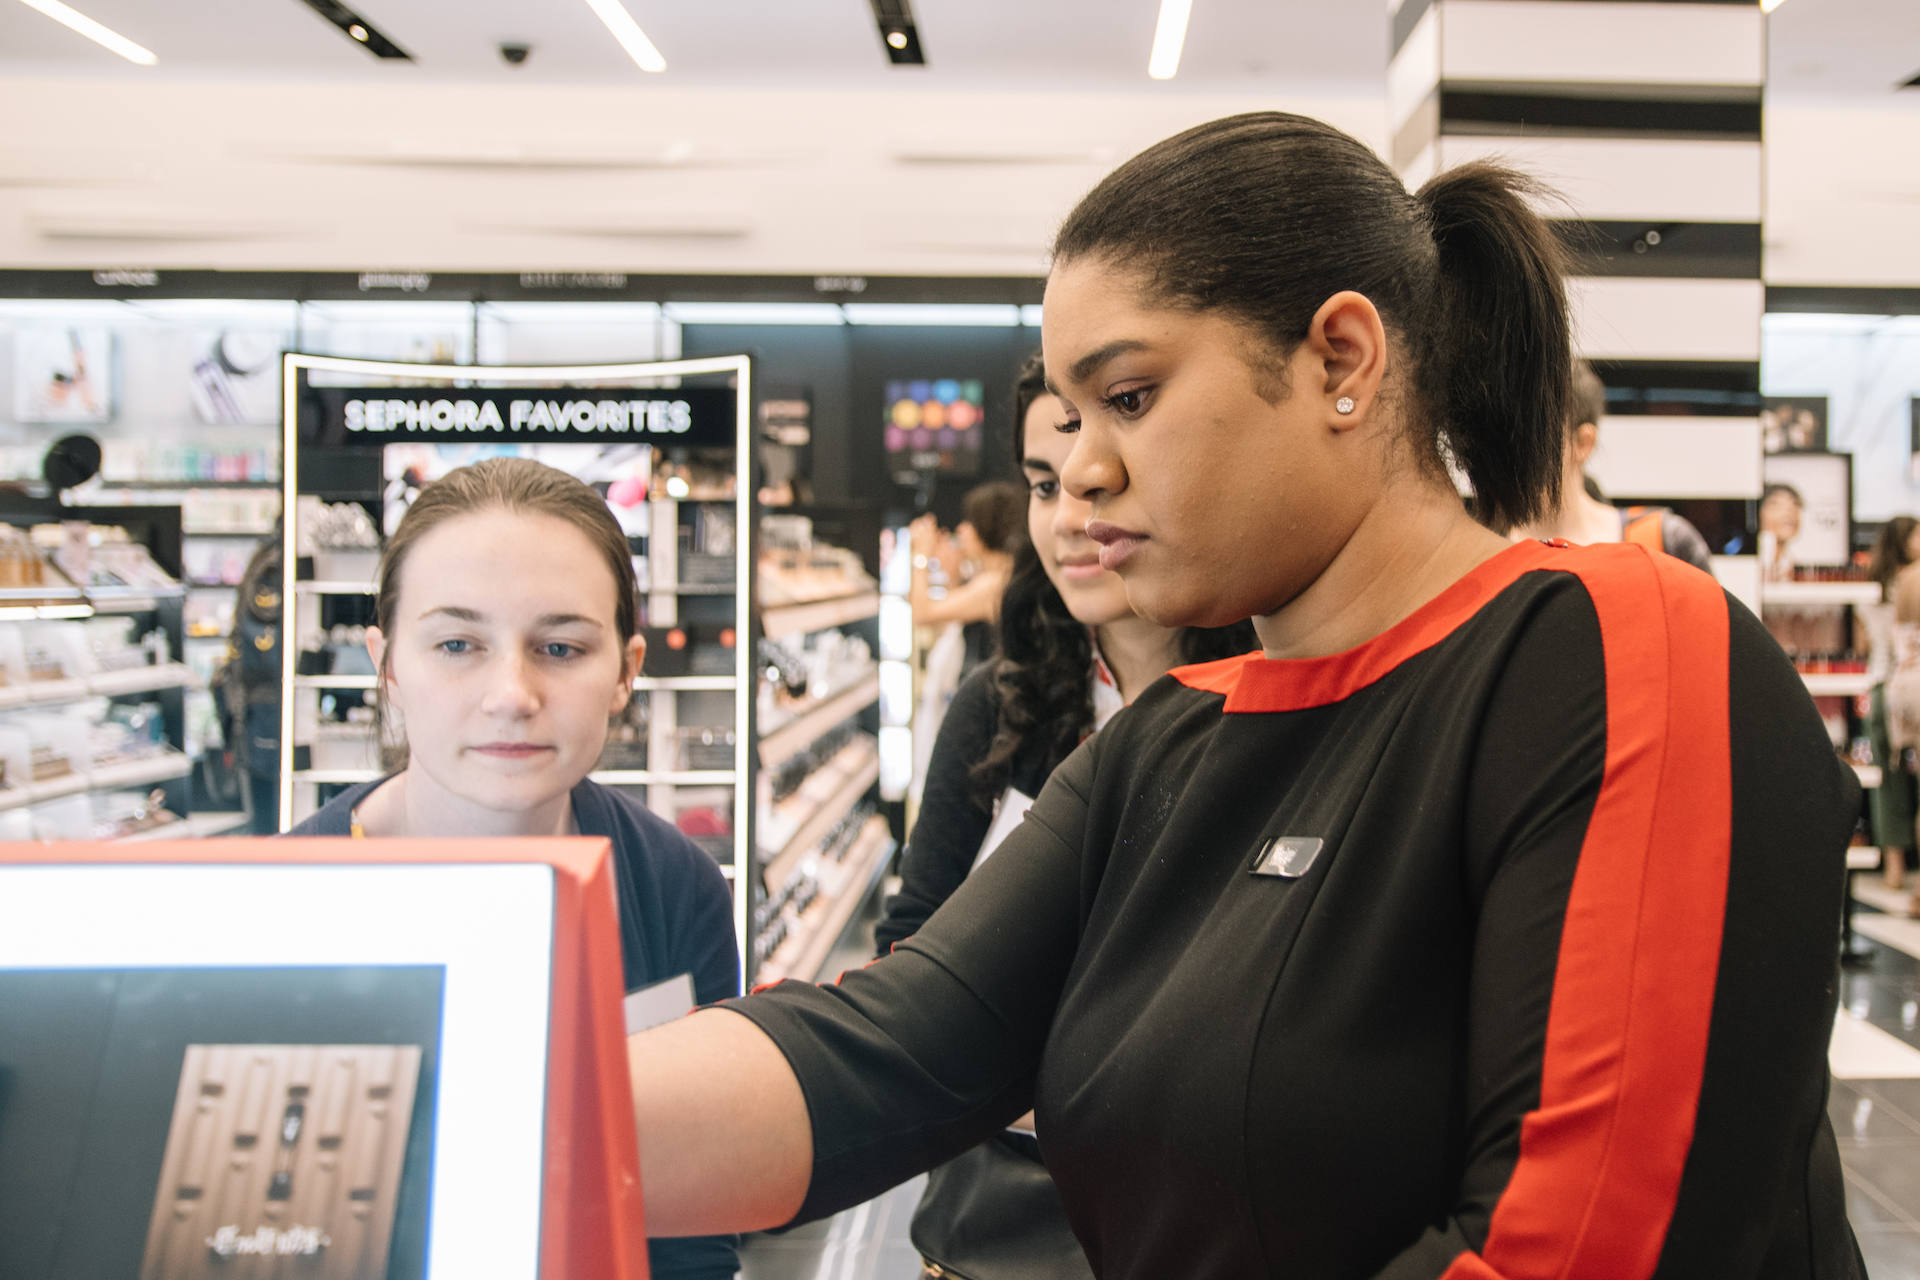 Sephora employee showing a customer how to use digital personalization kiosk